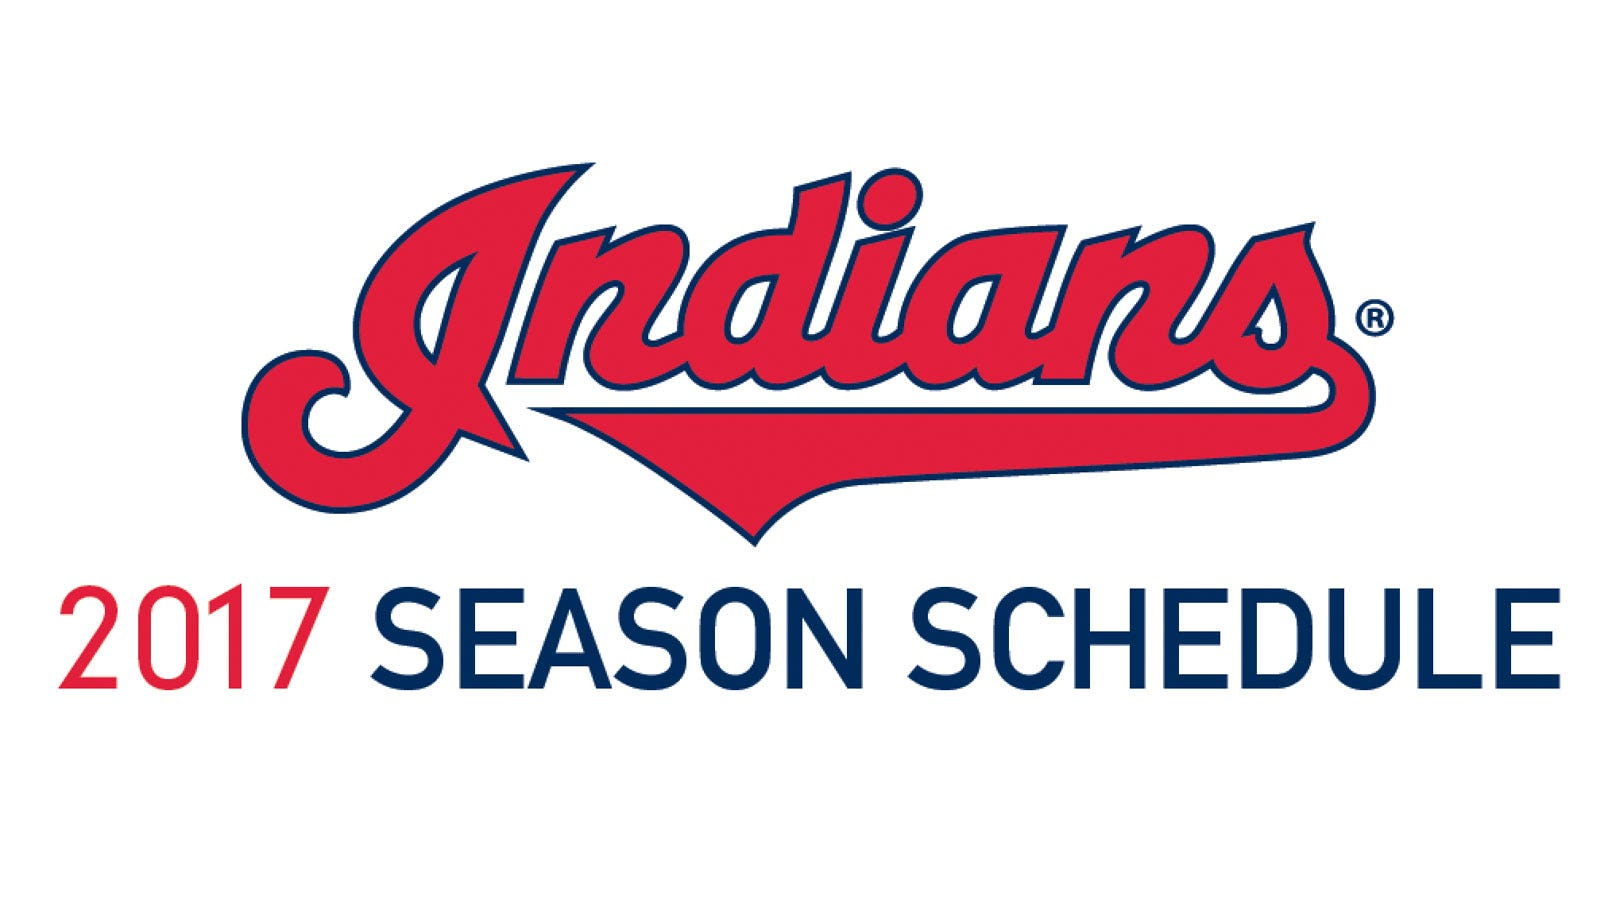 image regarding Cleveland Indians Printable Schedule named Cleveland indians 2017 program: Match situations, Television set facts